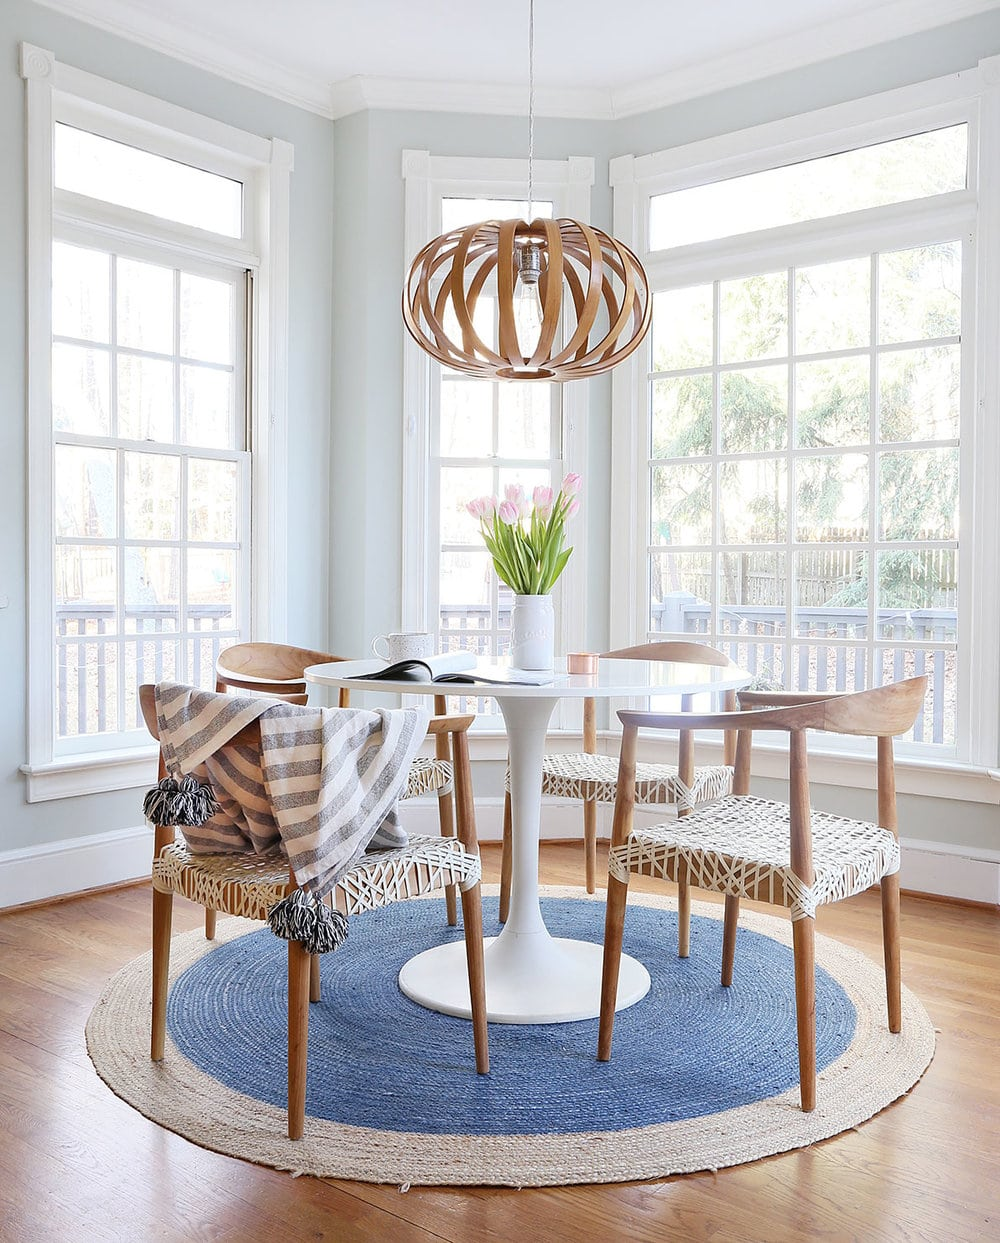 Mid-Century Design dinning room with string wrapped wood chairs